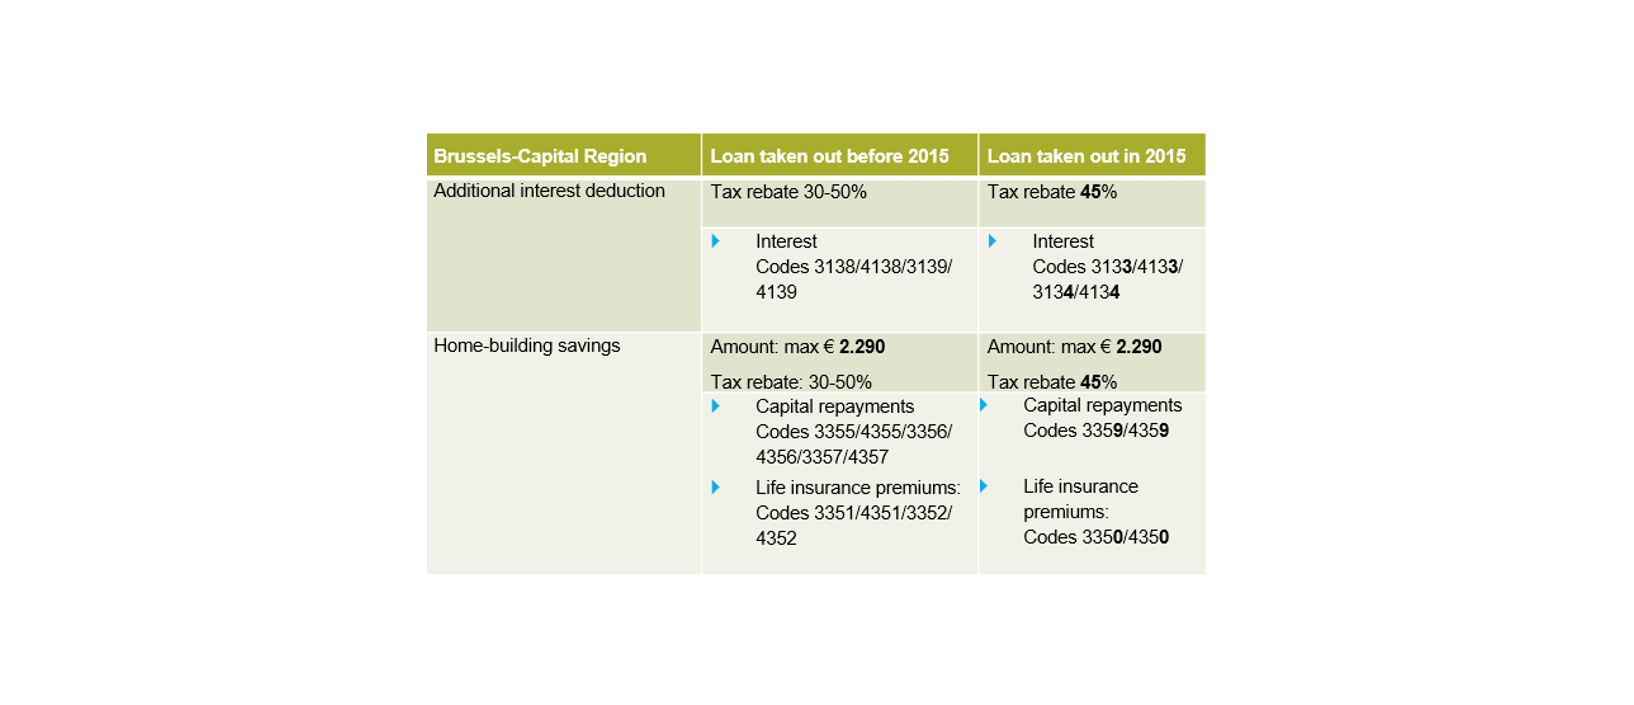 Brussels Capital region Home-building savings and additional interest